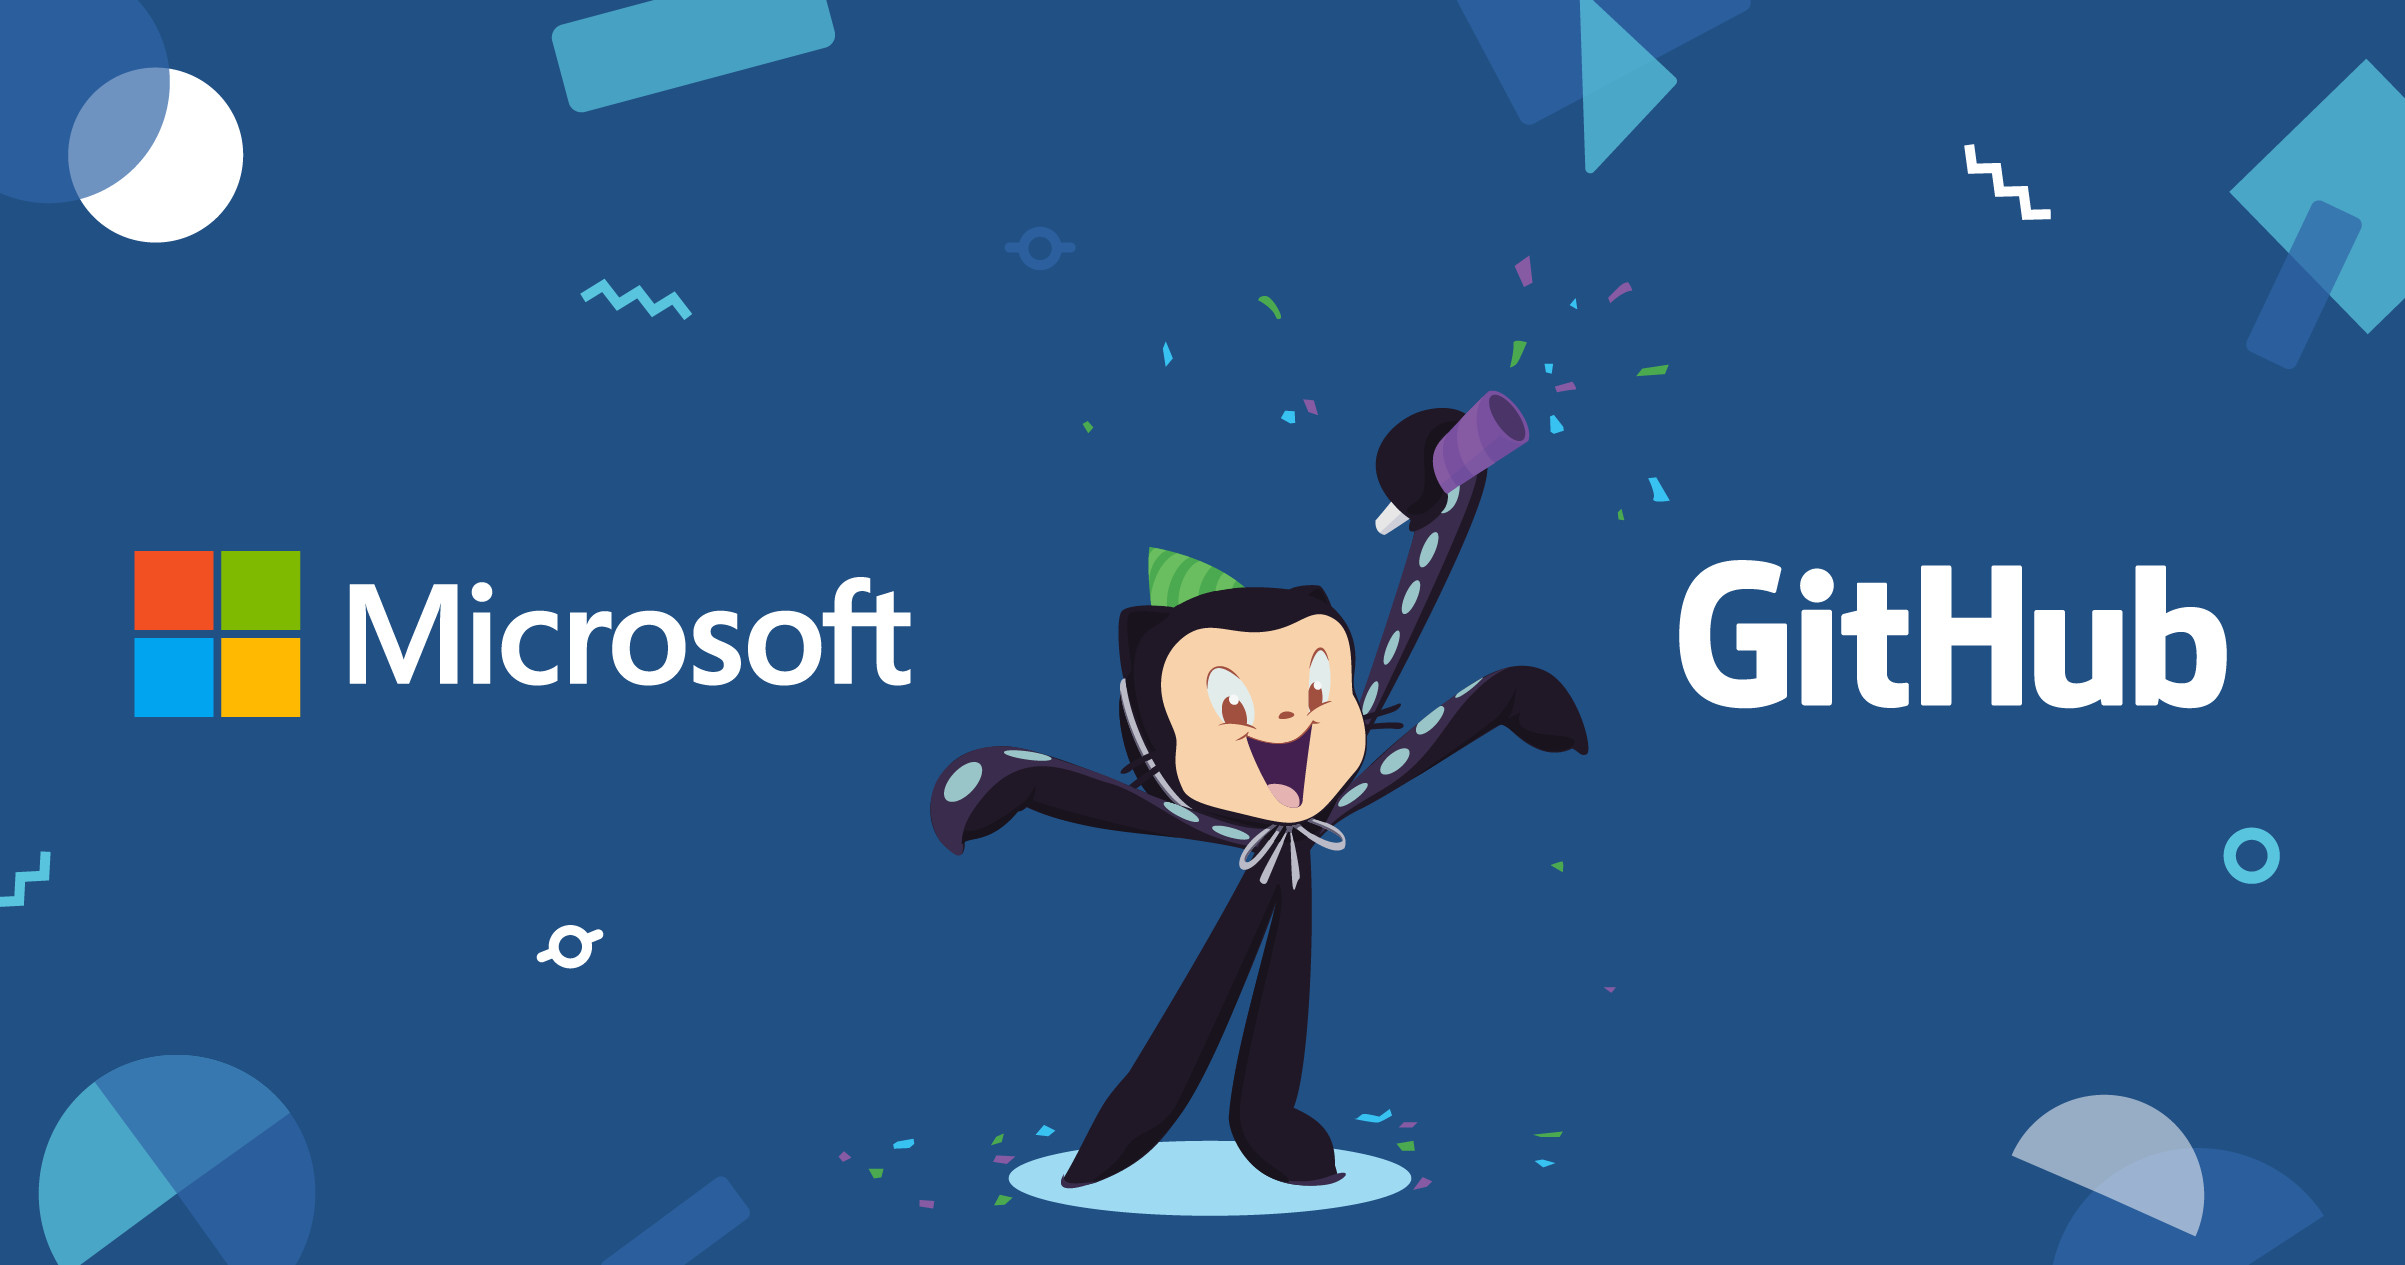 GitHub may soon join the Microsoft family - tech giant considers an acquisition